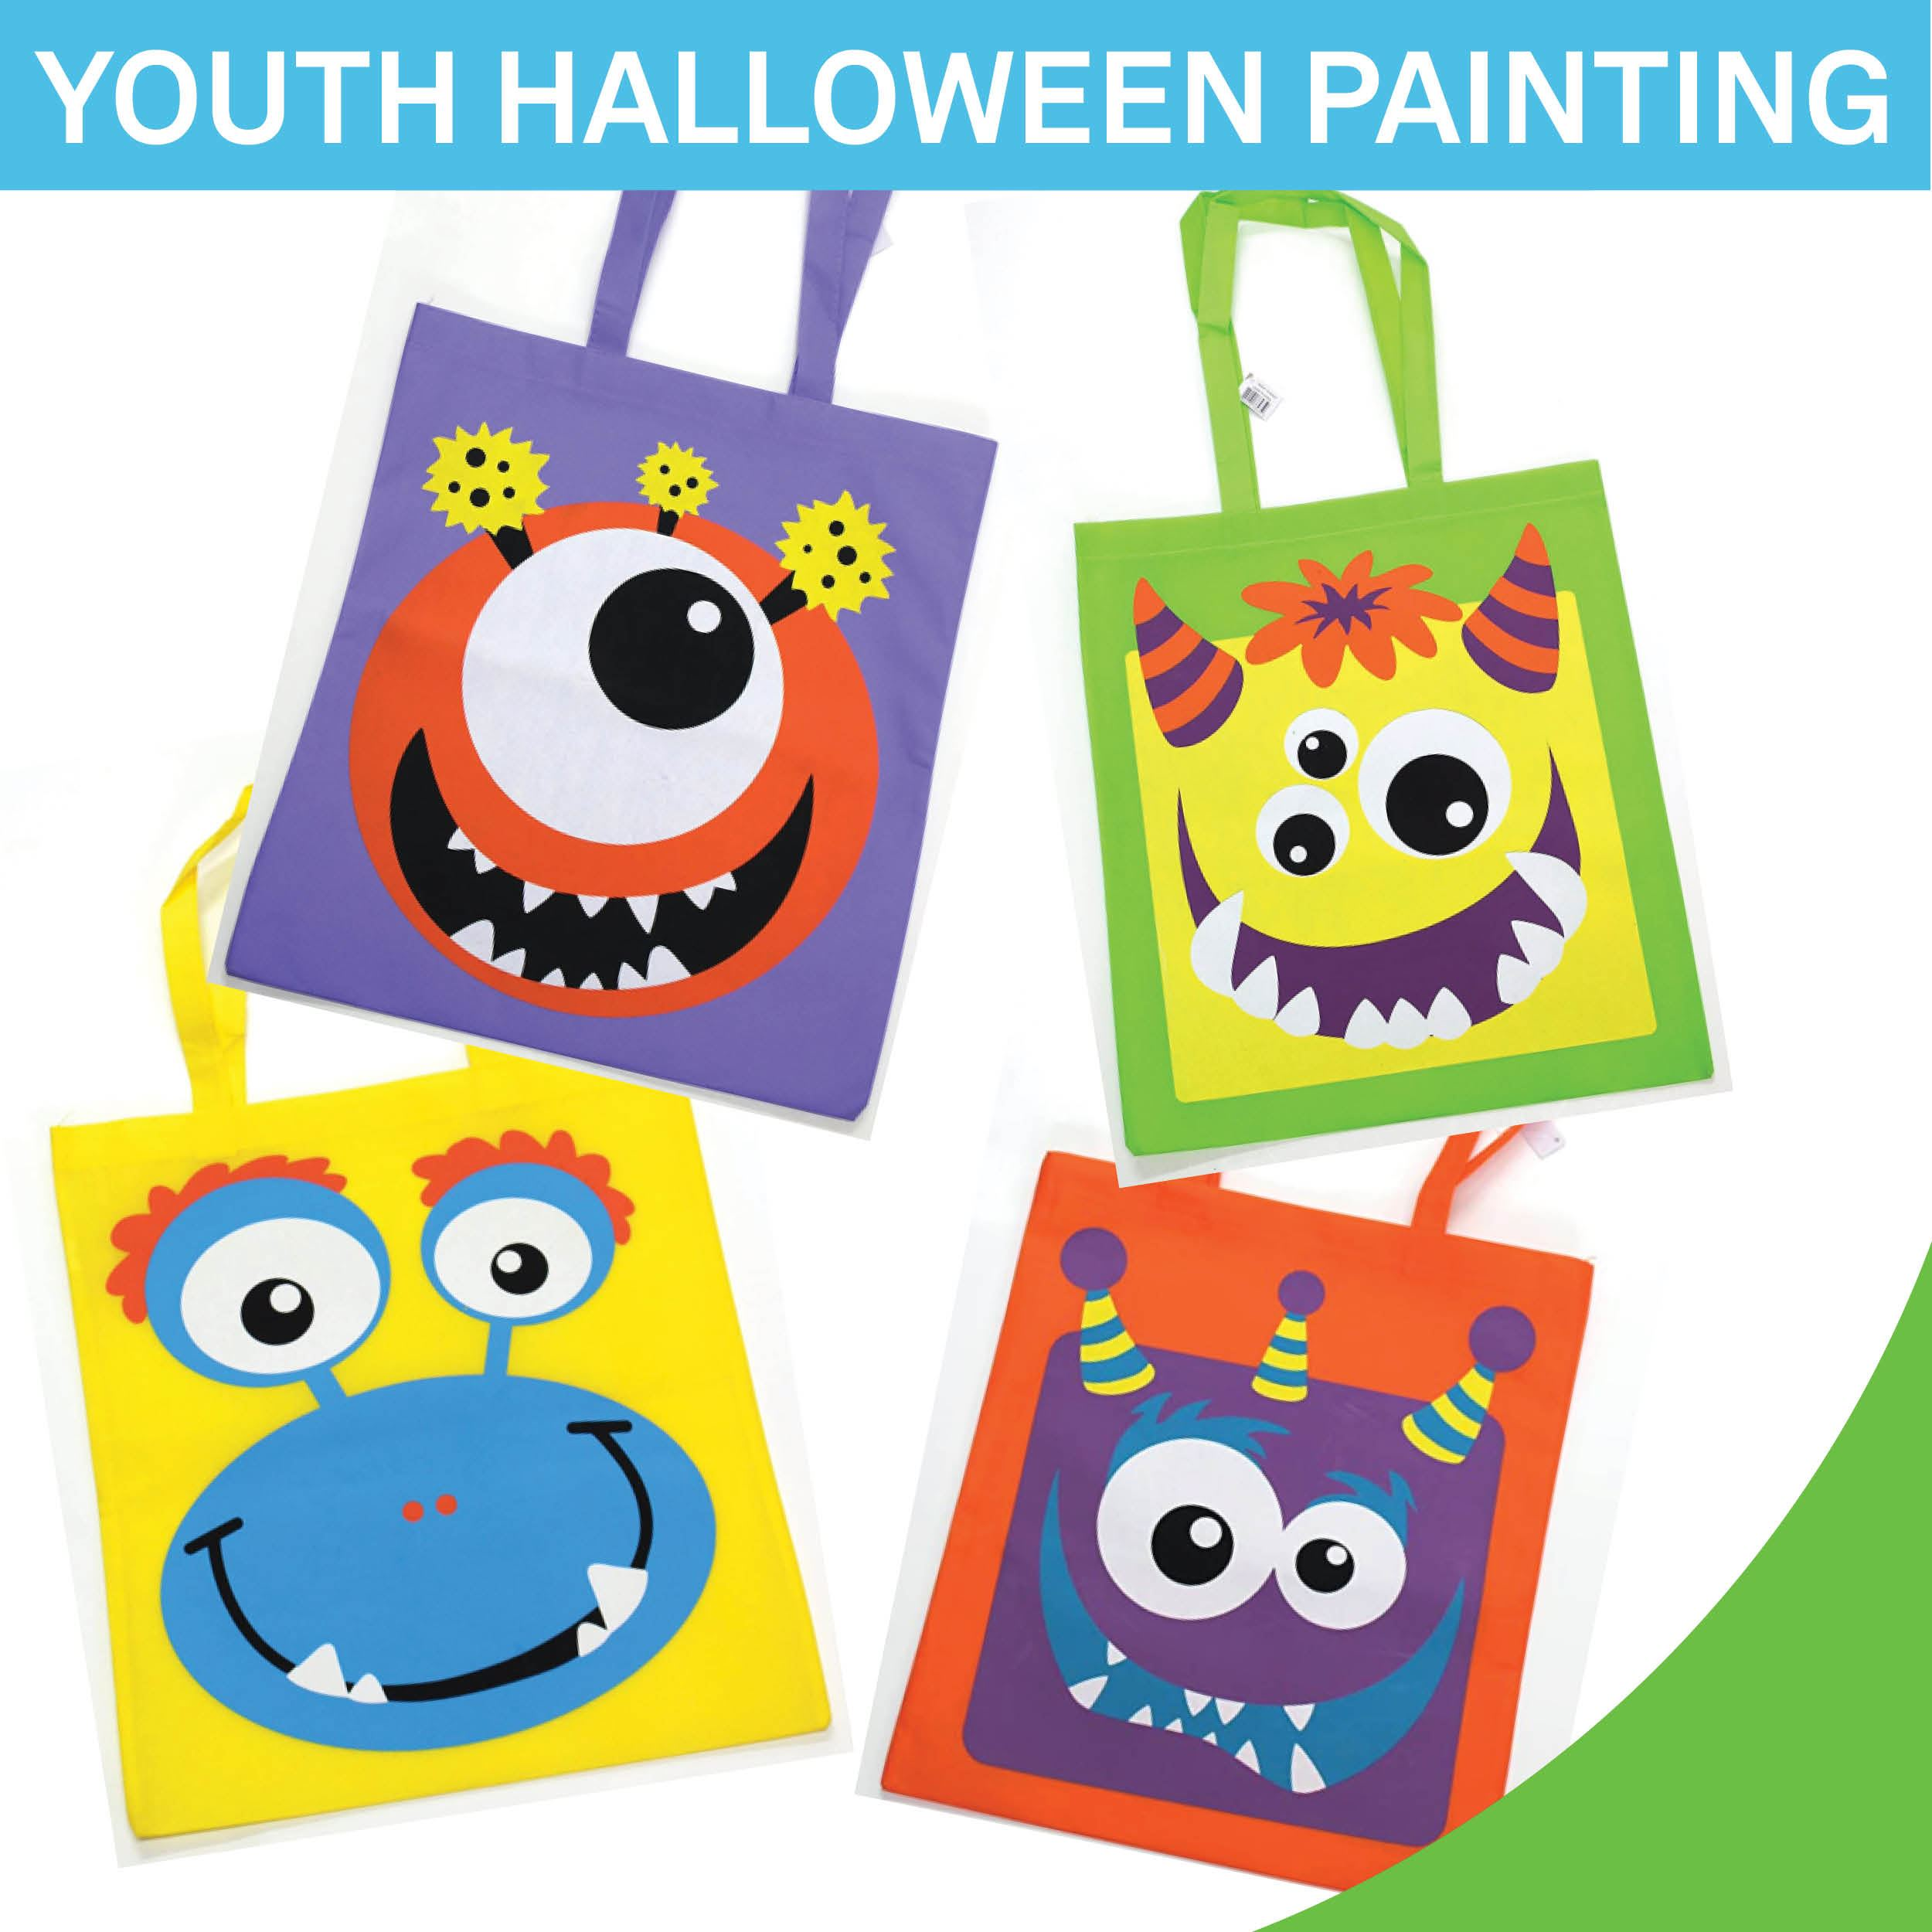 YOUTH HALLOWEEN PAINTING